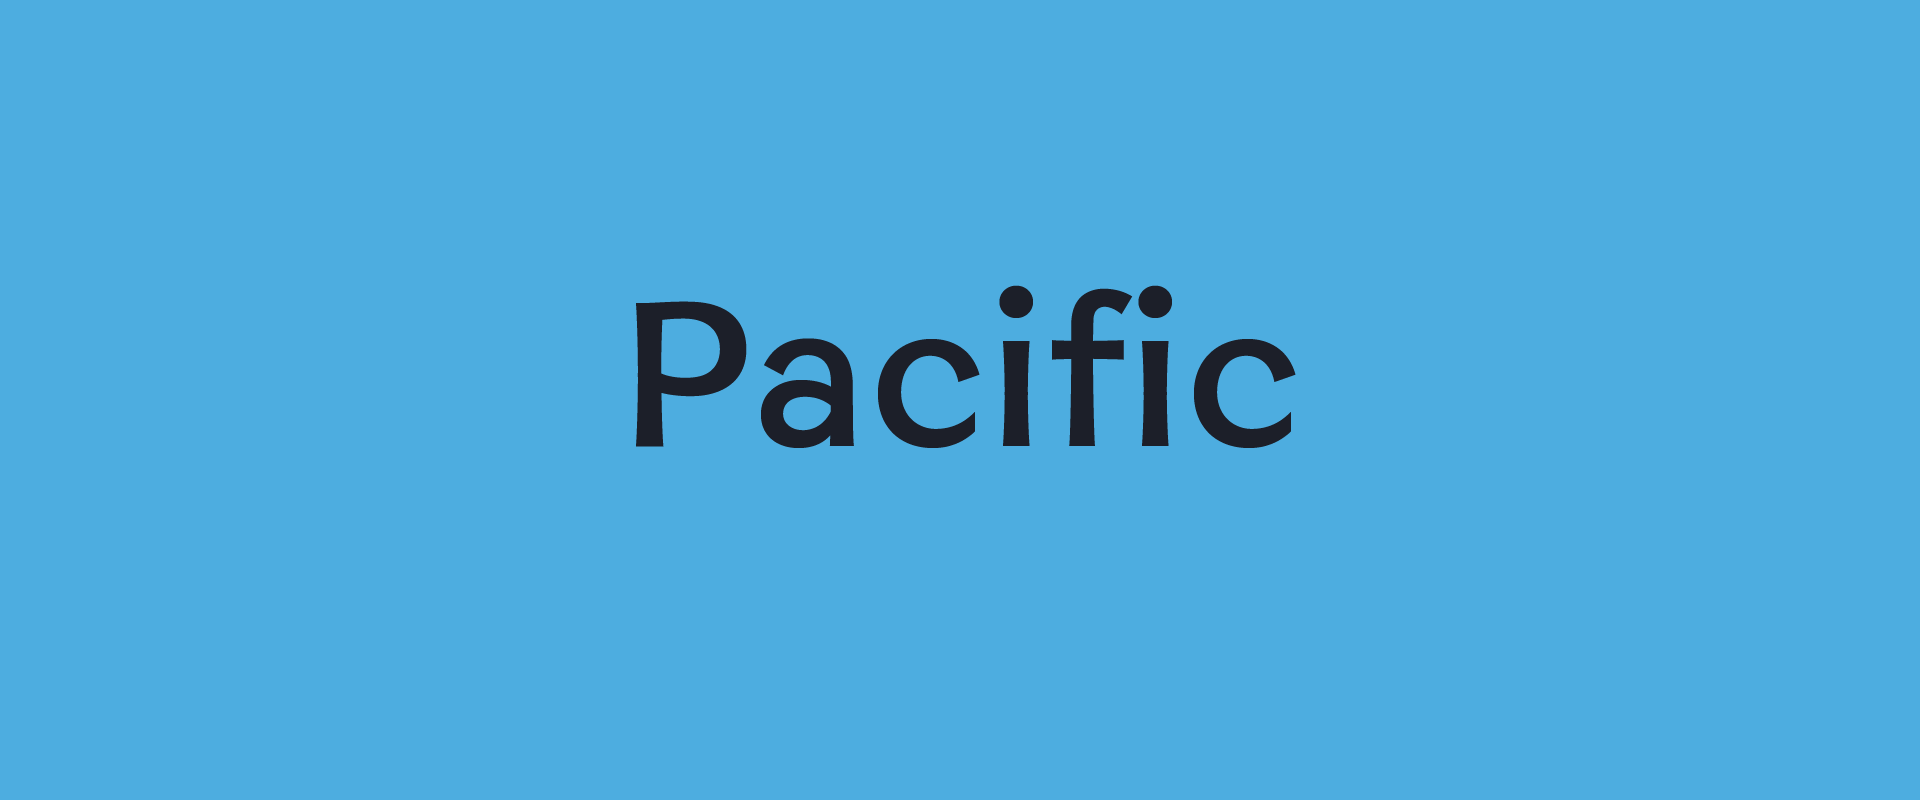 Type_Index_Pacific.png